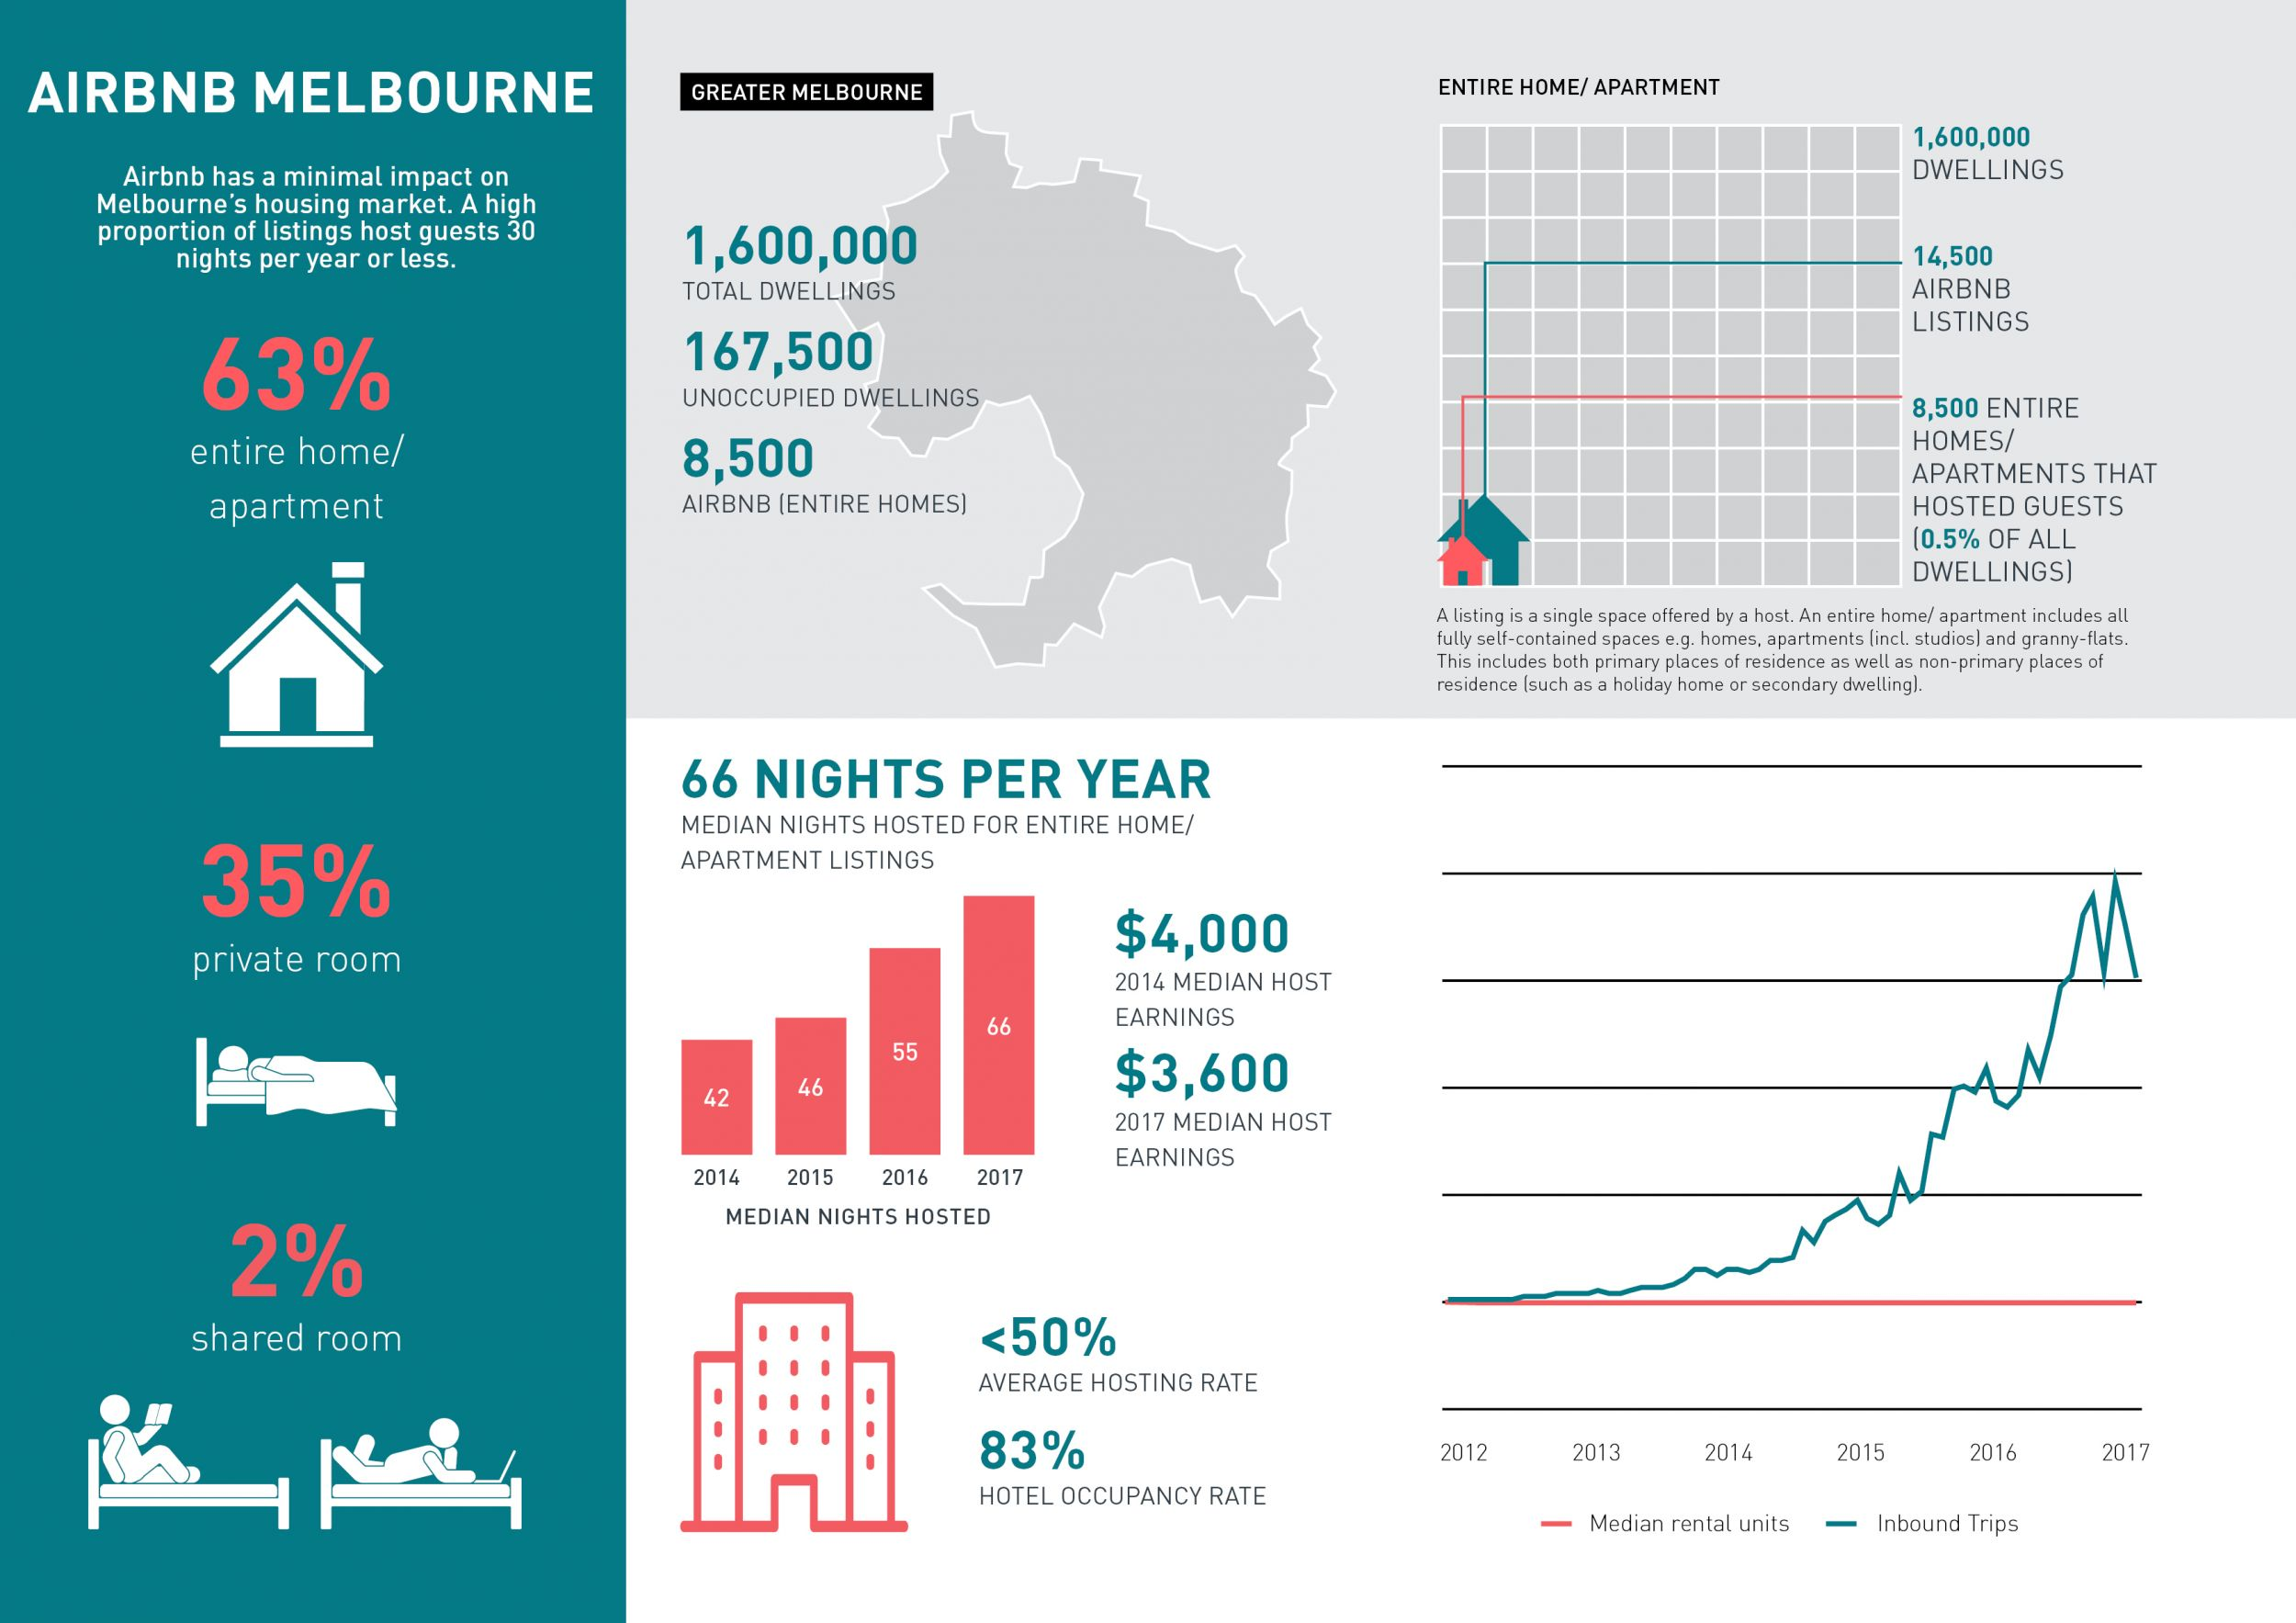 SGS Economics and Planning airbnb Melb